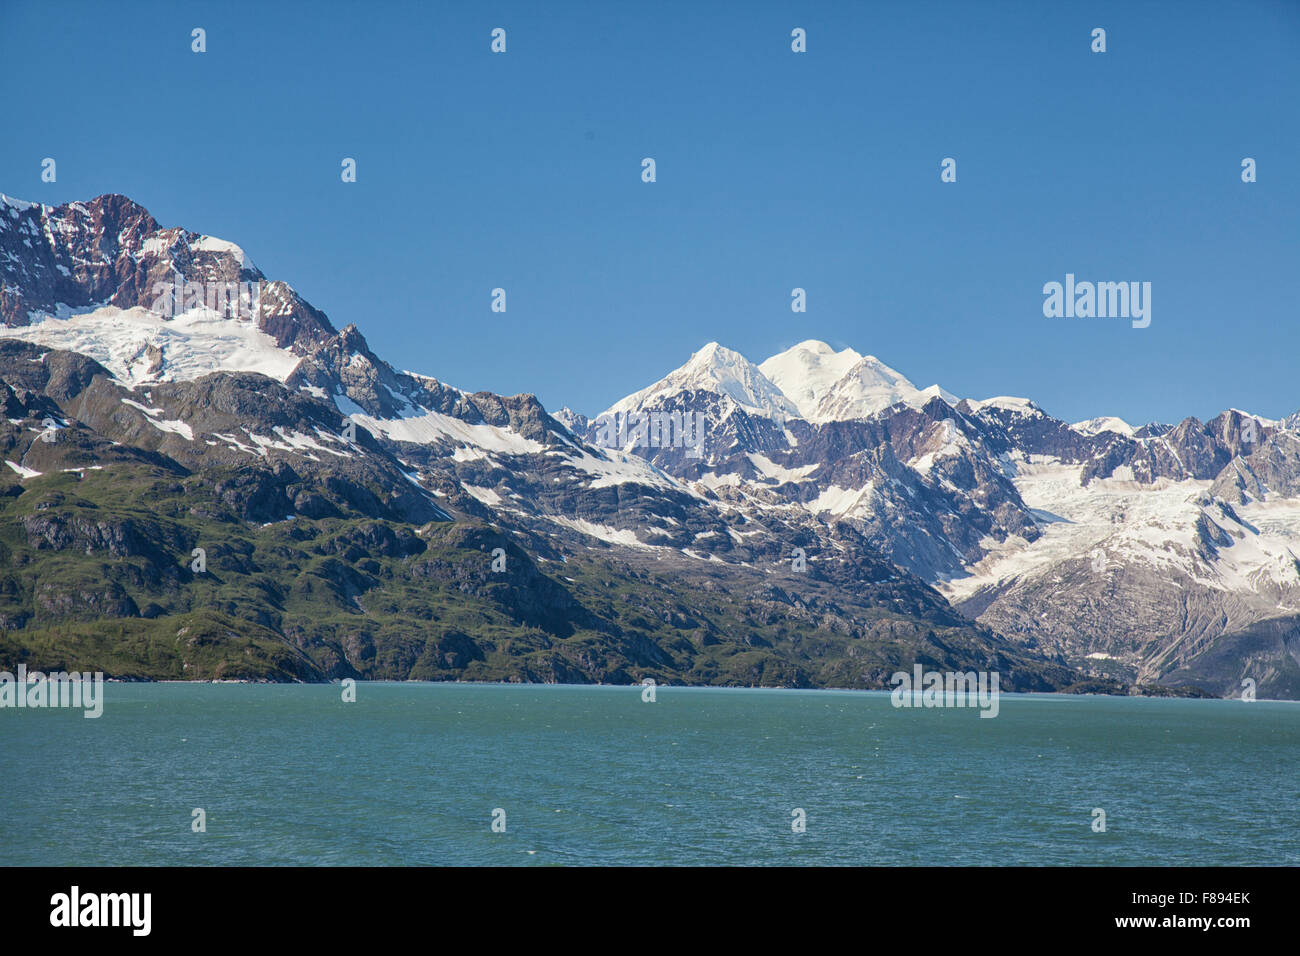 mountain peaks and rugged terrain in alaska - Stock Image